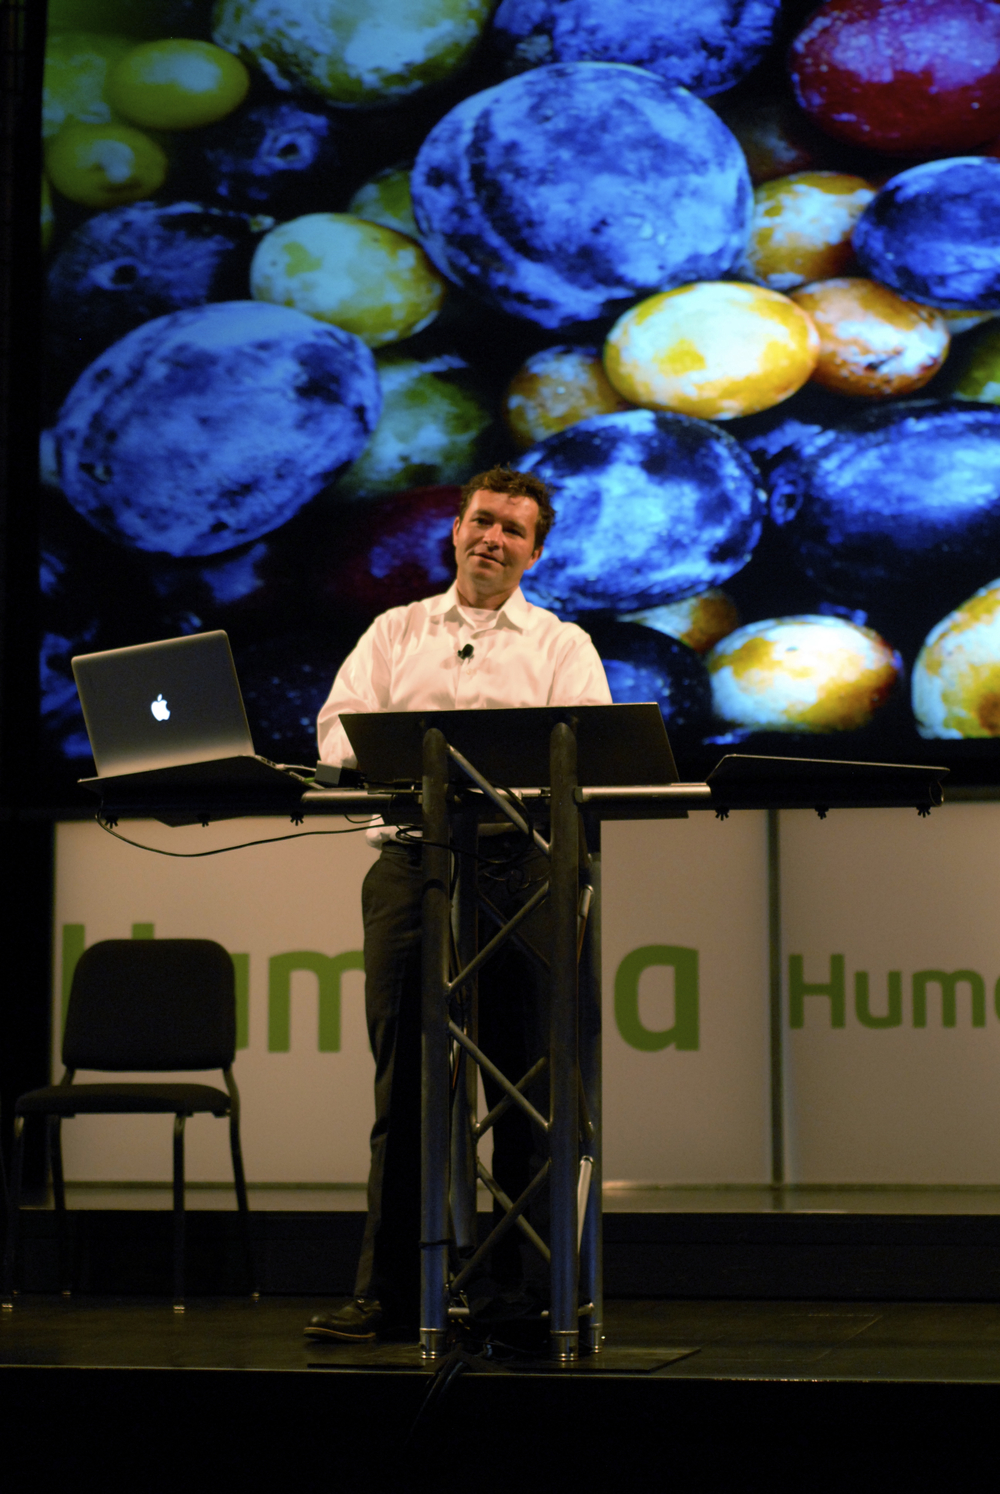 Sam Van Atken, a Creative Capital grantee, presents his tree of 40 fruits at Idea Festival 2012 in Louisville.